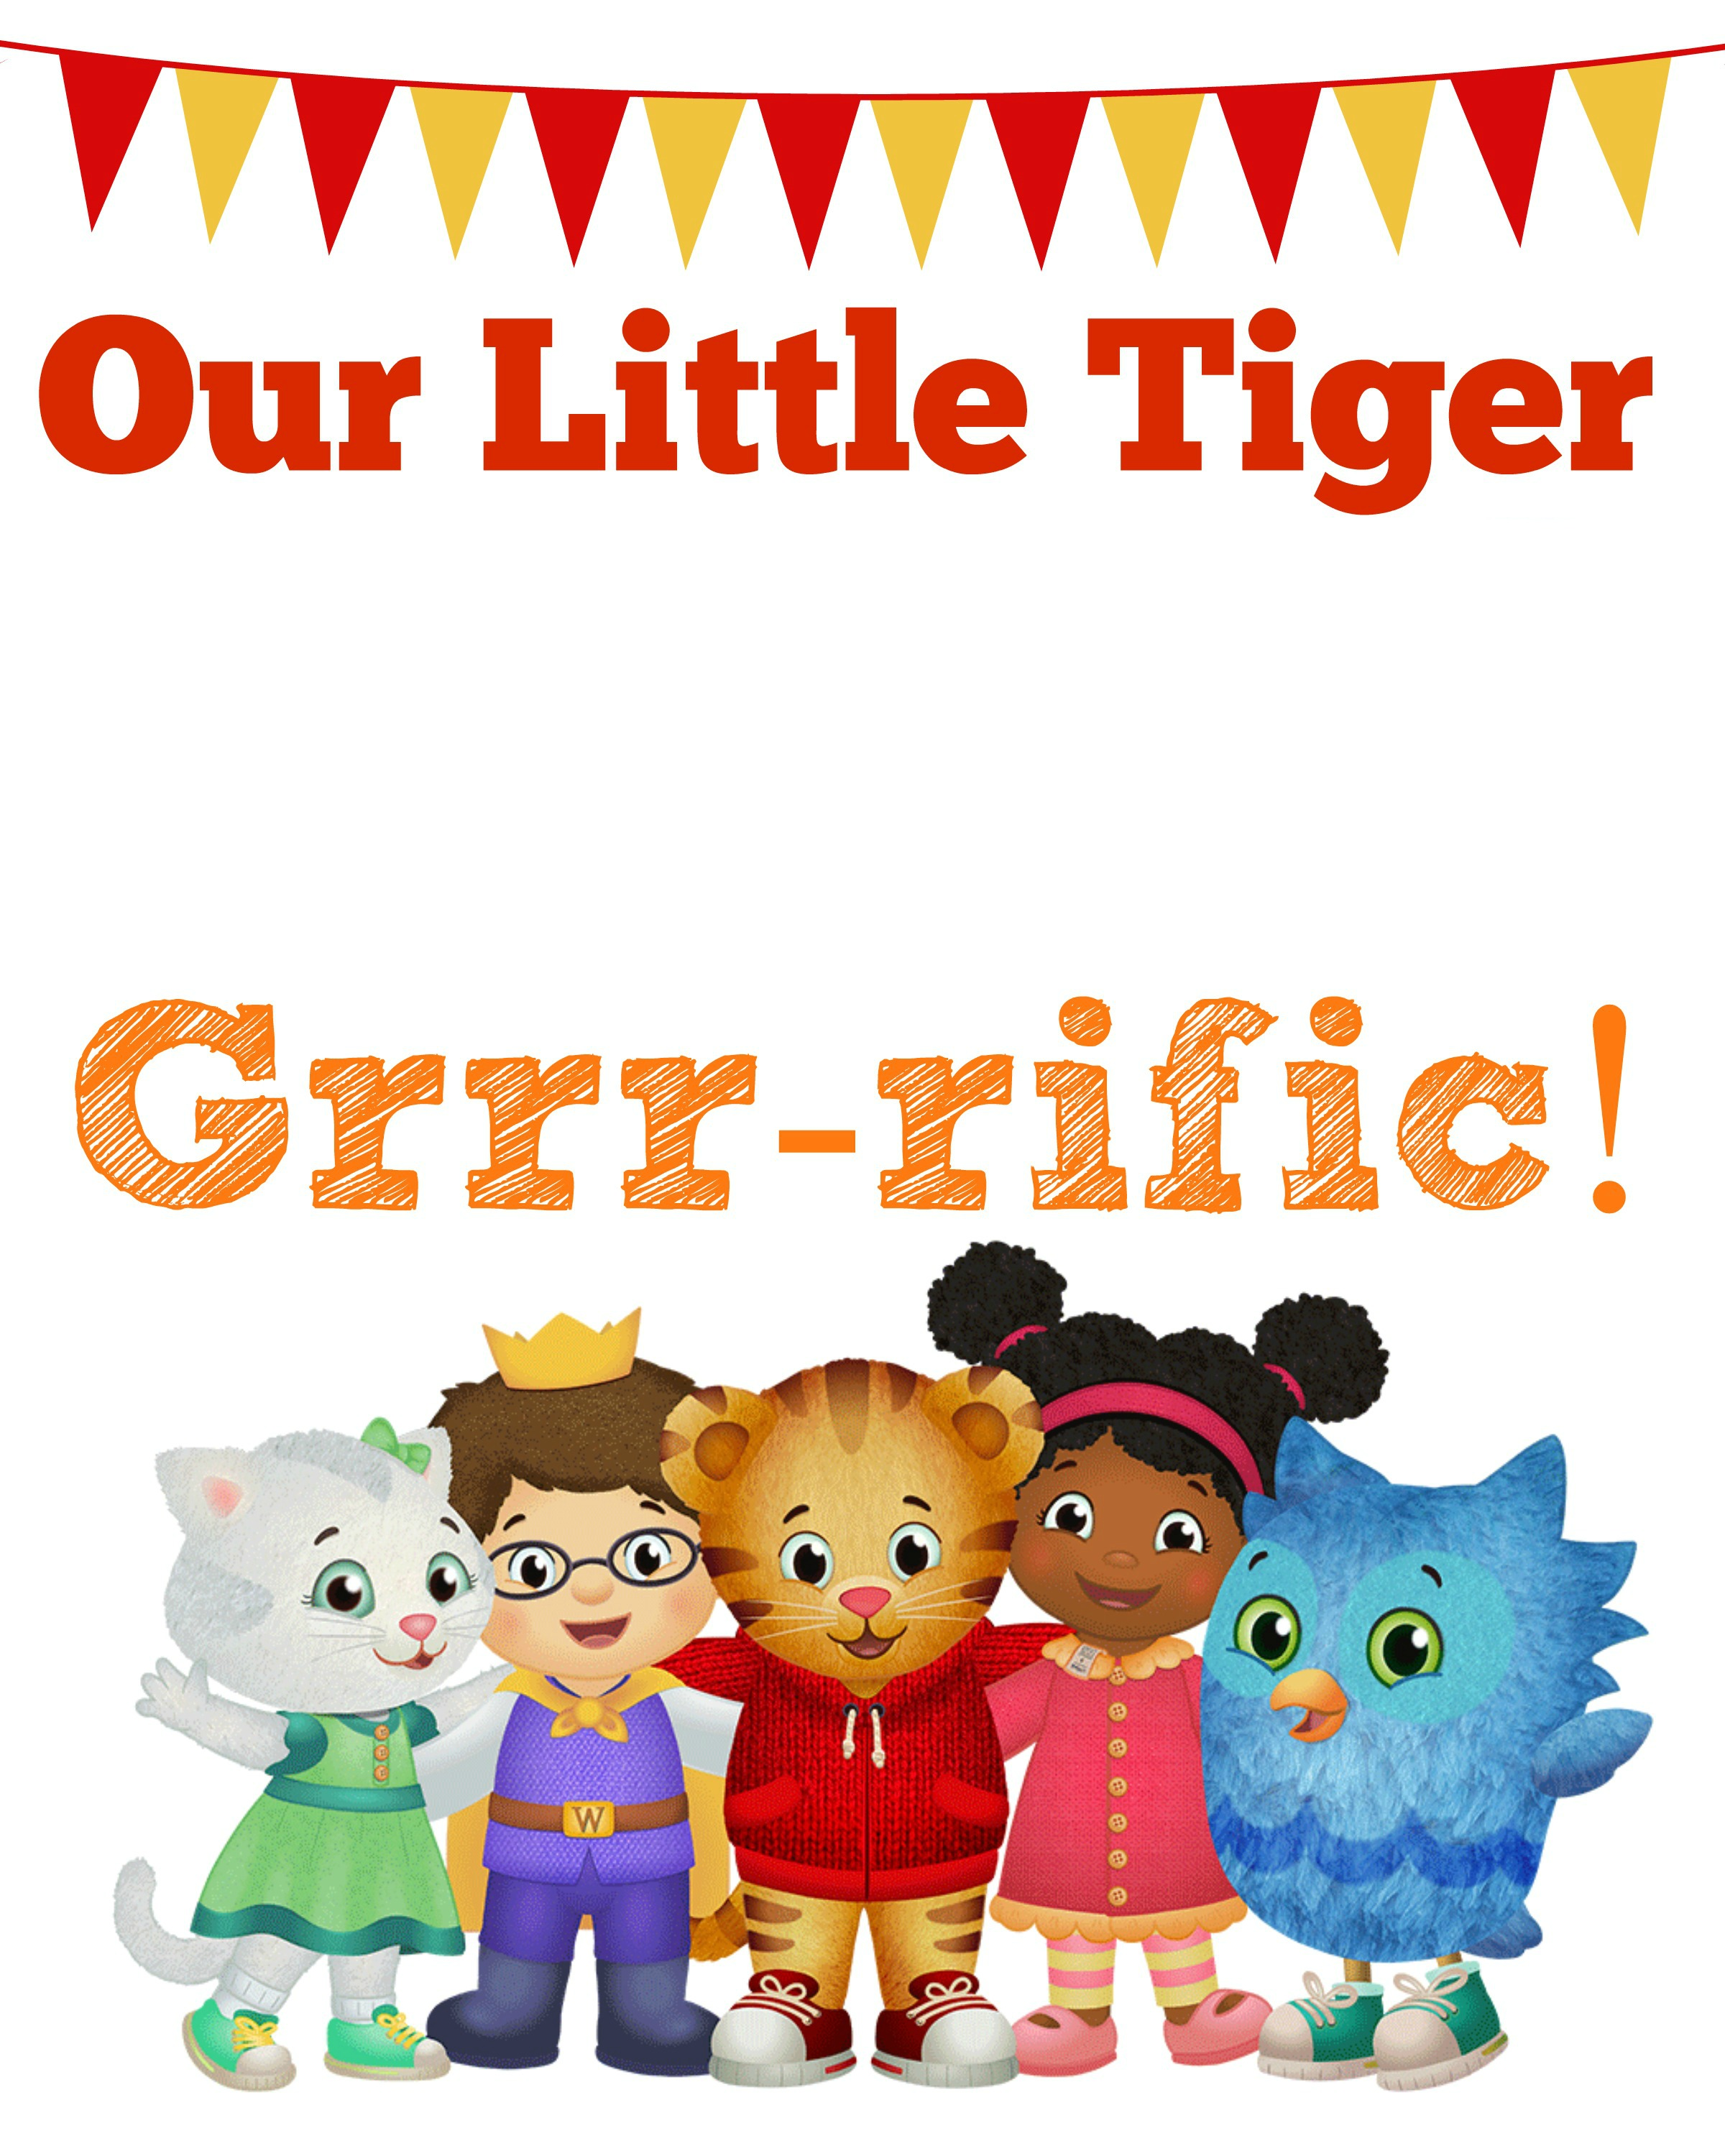 photo regarding Daniel Tiger Printable known as Daniel Tiger Birthday Bash + 2 Totally free Printables - Little one at